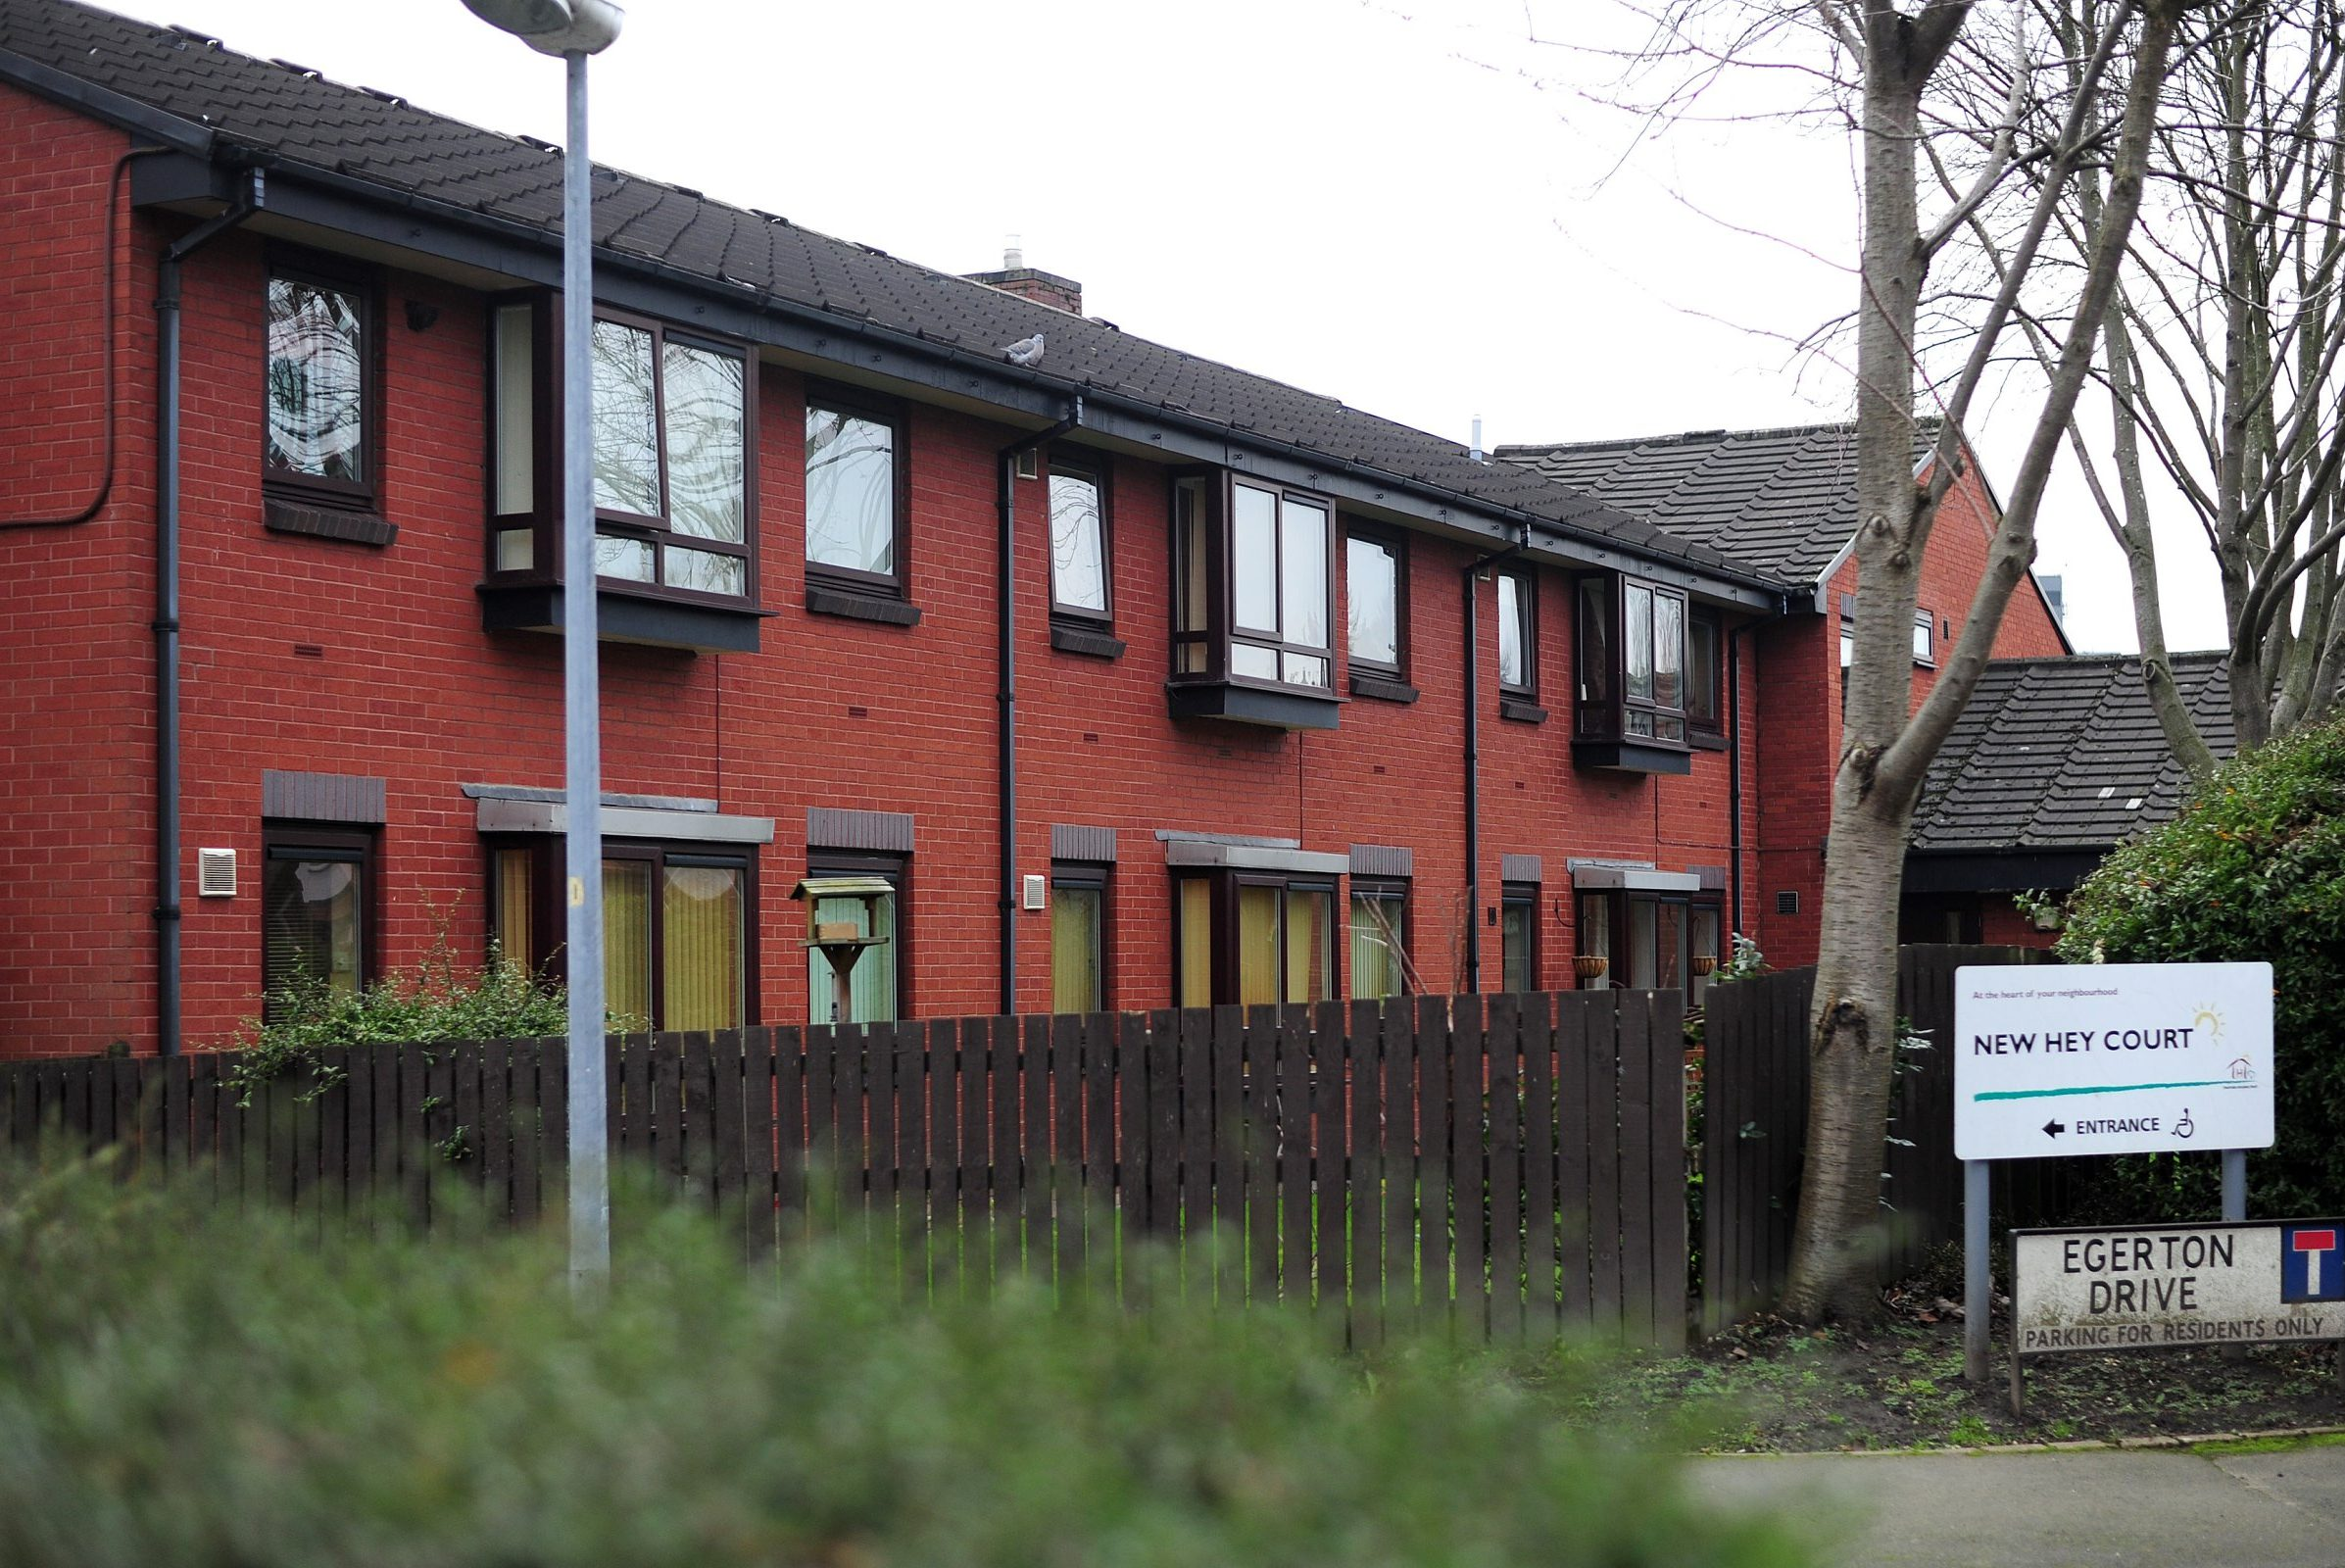 An elderly man has died after an attack at a sheltered housing complex on Christmas Day. Graham Liddle, 79, passed away in hospital on December 28, three days after he was assaulted at the home on Sale, Greater Manchester. Caption: New Hey Court sheltered housing complex on Egerton Drive in Sale, Greater Manchester, where a man was attacked on Christmas Day and died of his injuries on December 28, 2018